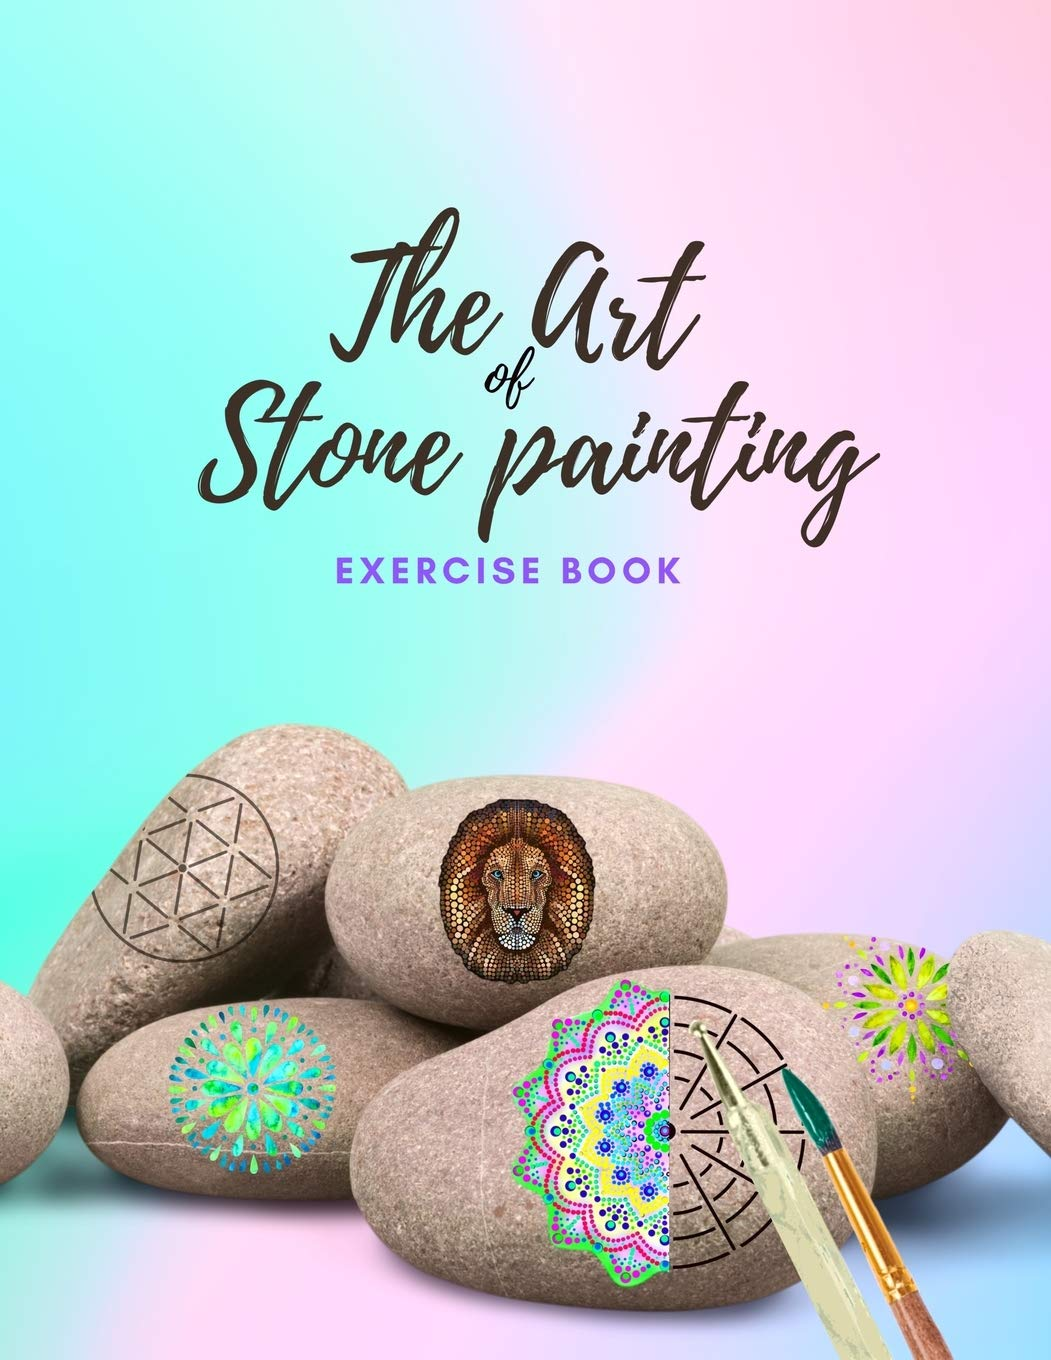 The Art Of Stone Painting Exercise Book Rock Painting Books For Adults With Different Templates Mandala Rock Painting Books How To Paint Mandala On Rocks Painting Animals On Rocks